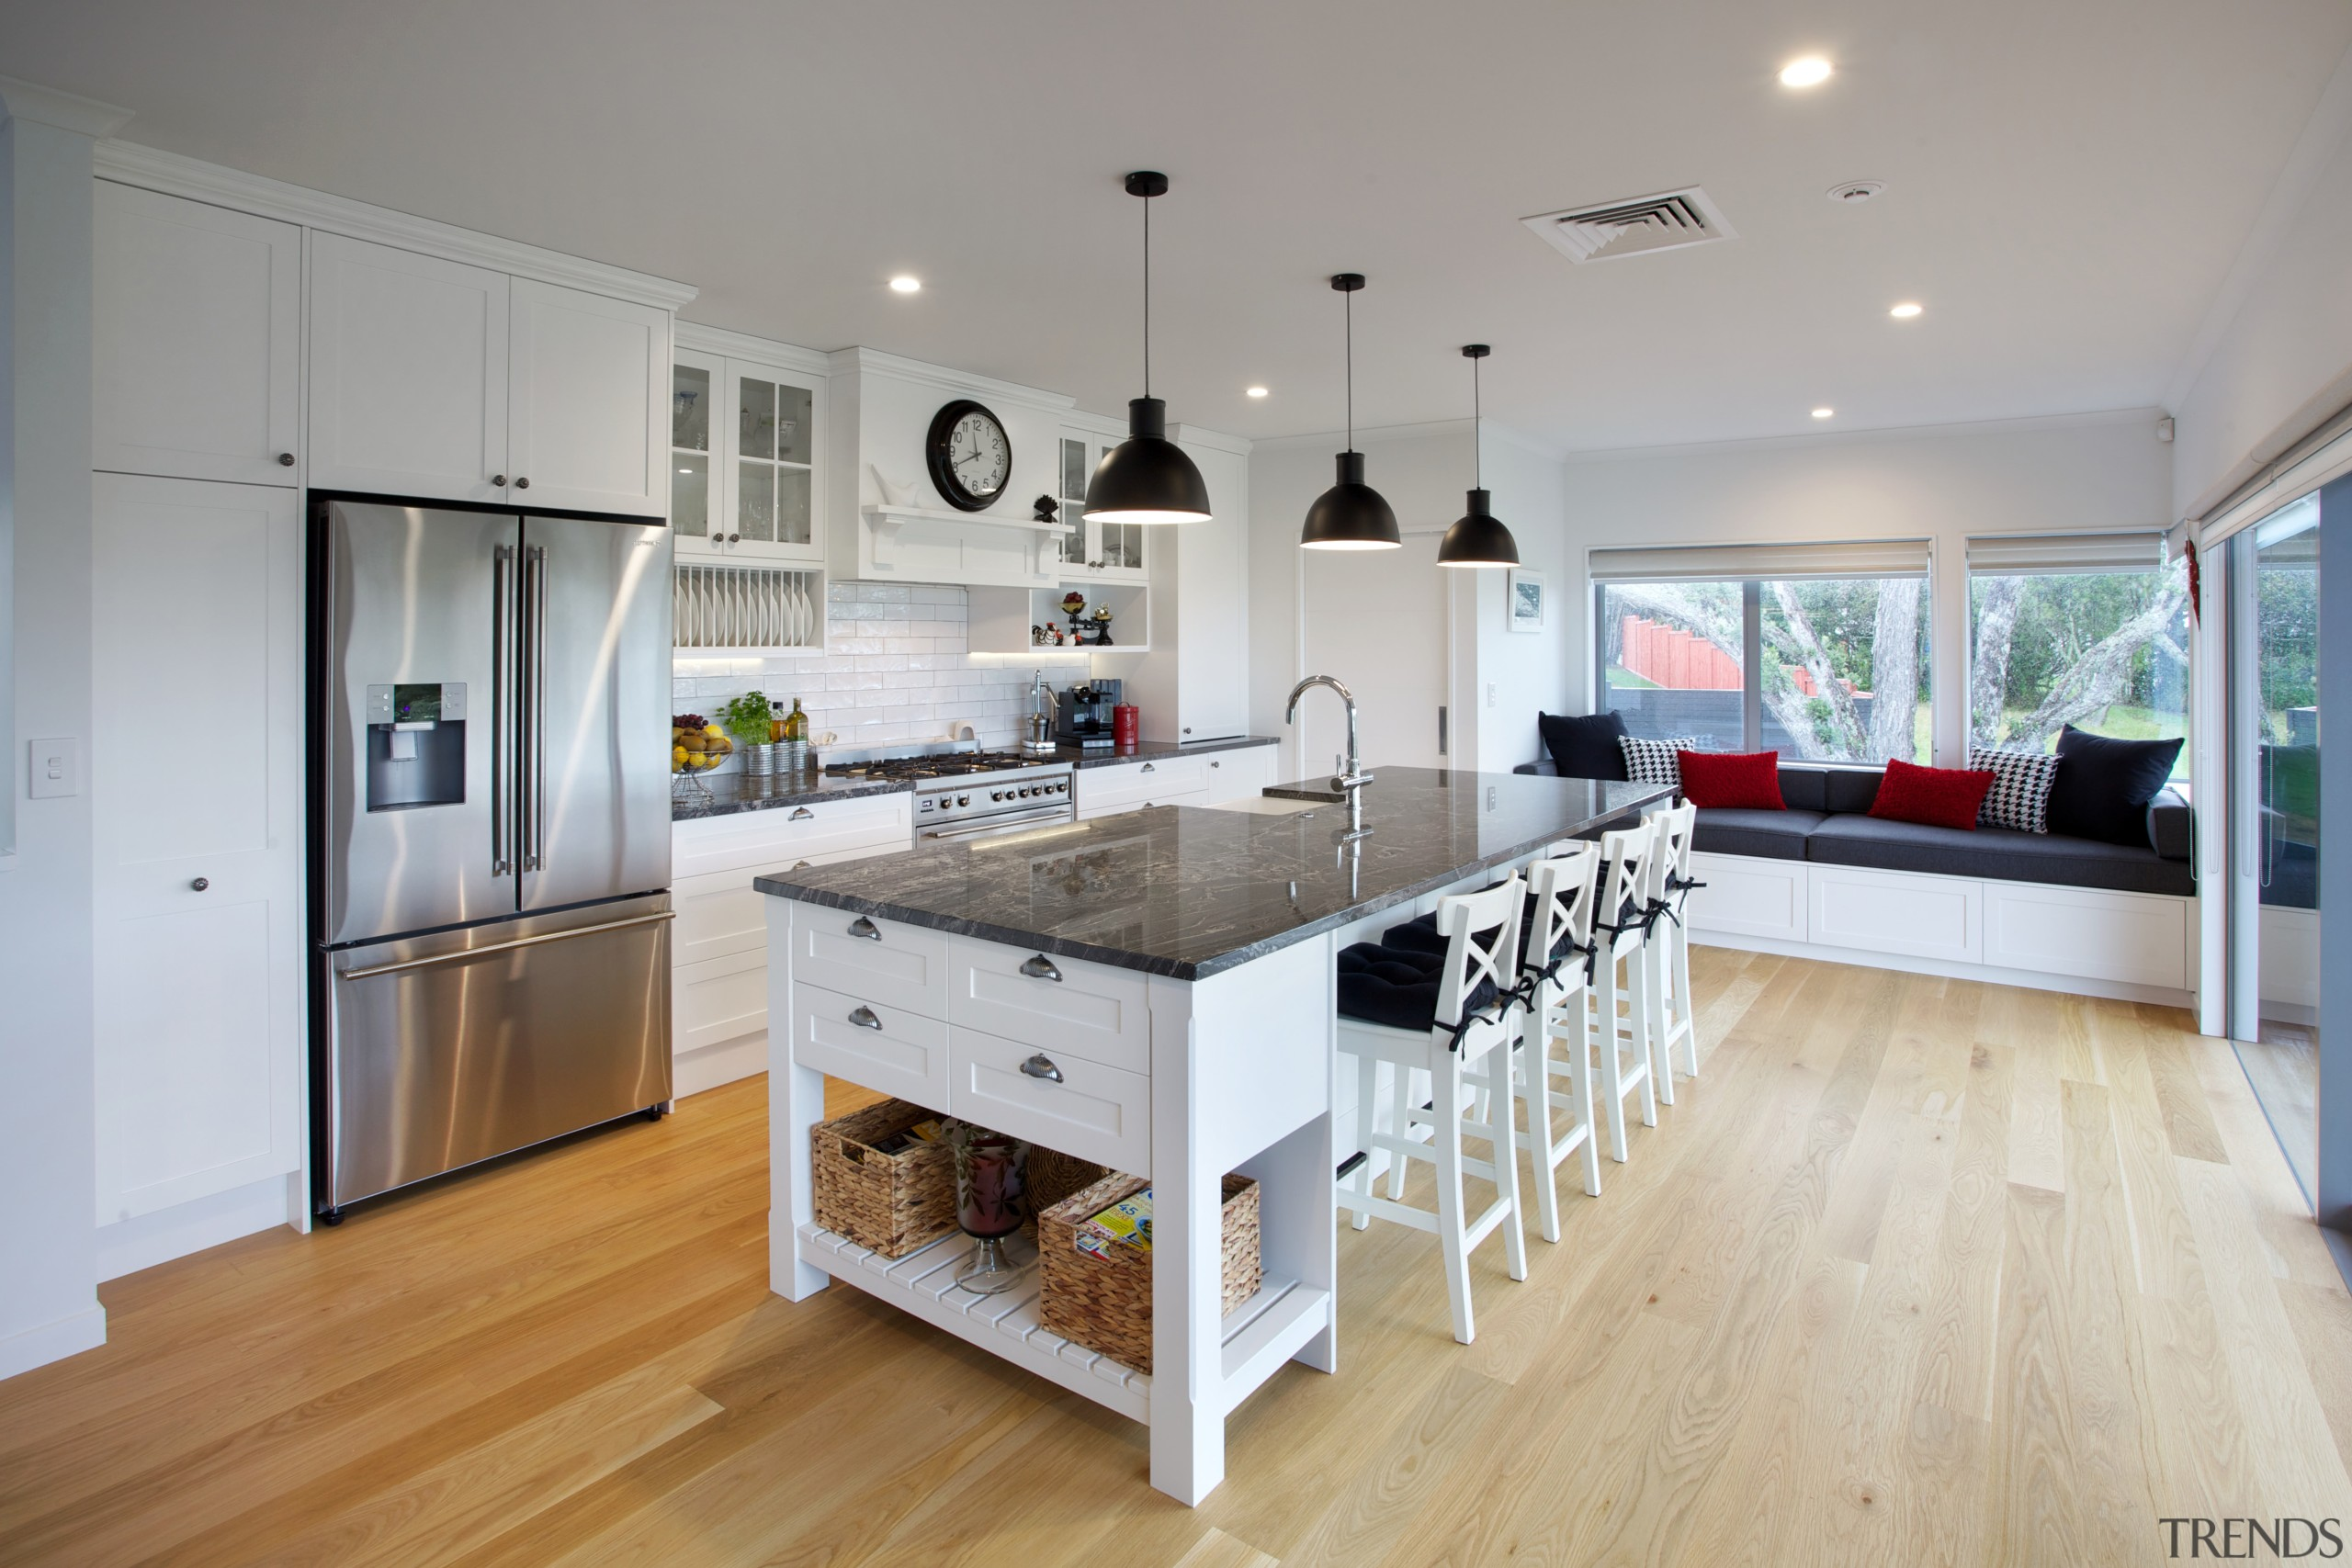 This kitchen design integrates with the wider space countertop, cuisine classique, floor, interior design, kitchen, real estate, room, gray